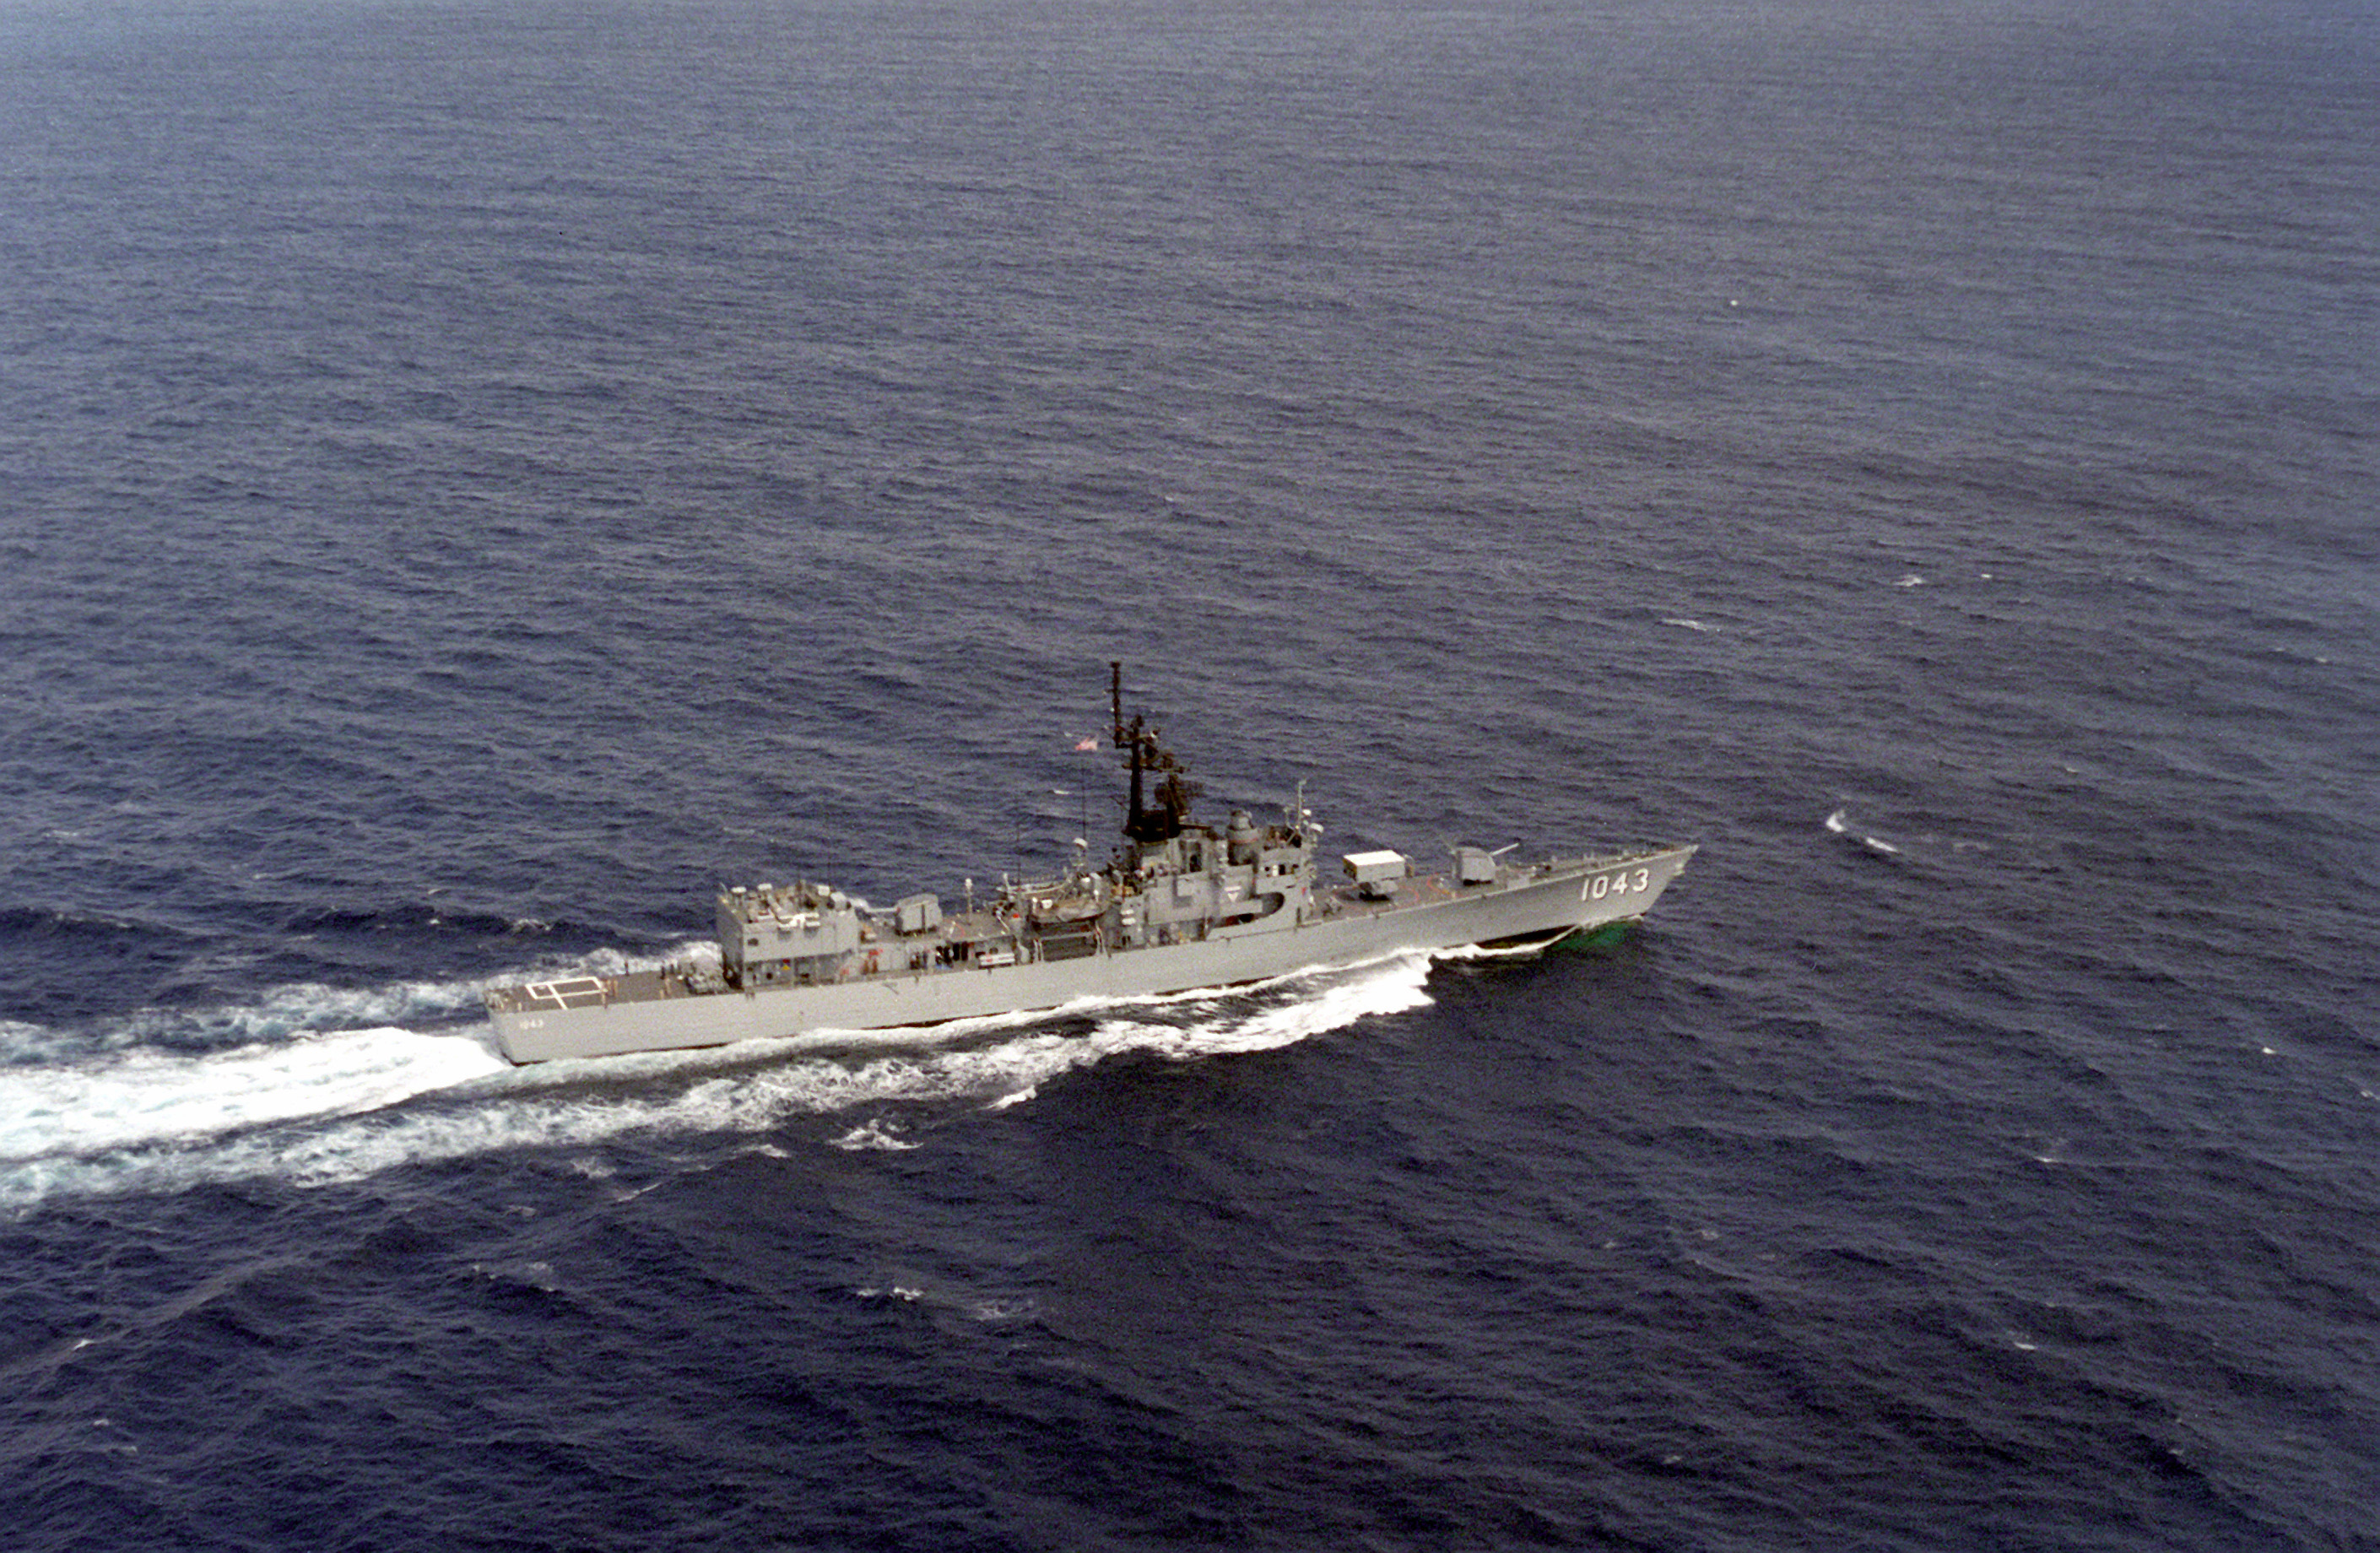 USS Edward McDonnell (FF-1043) underway